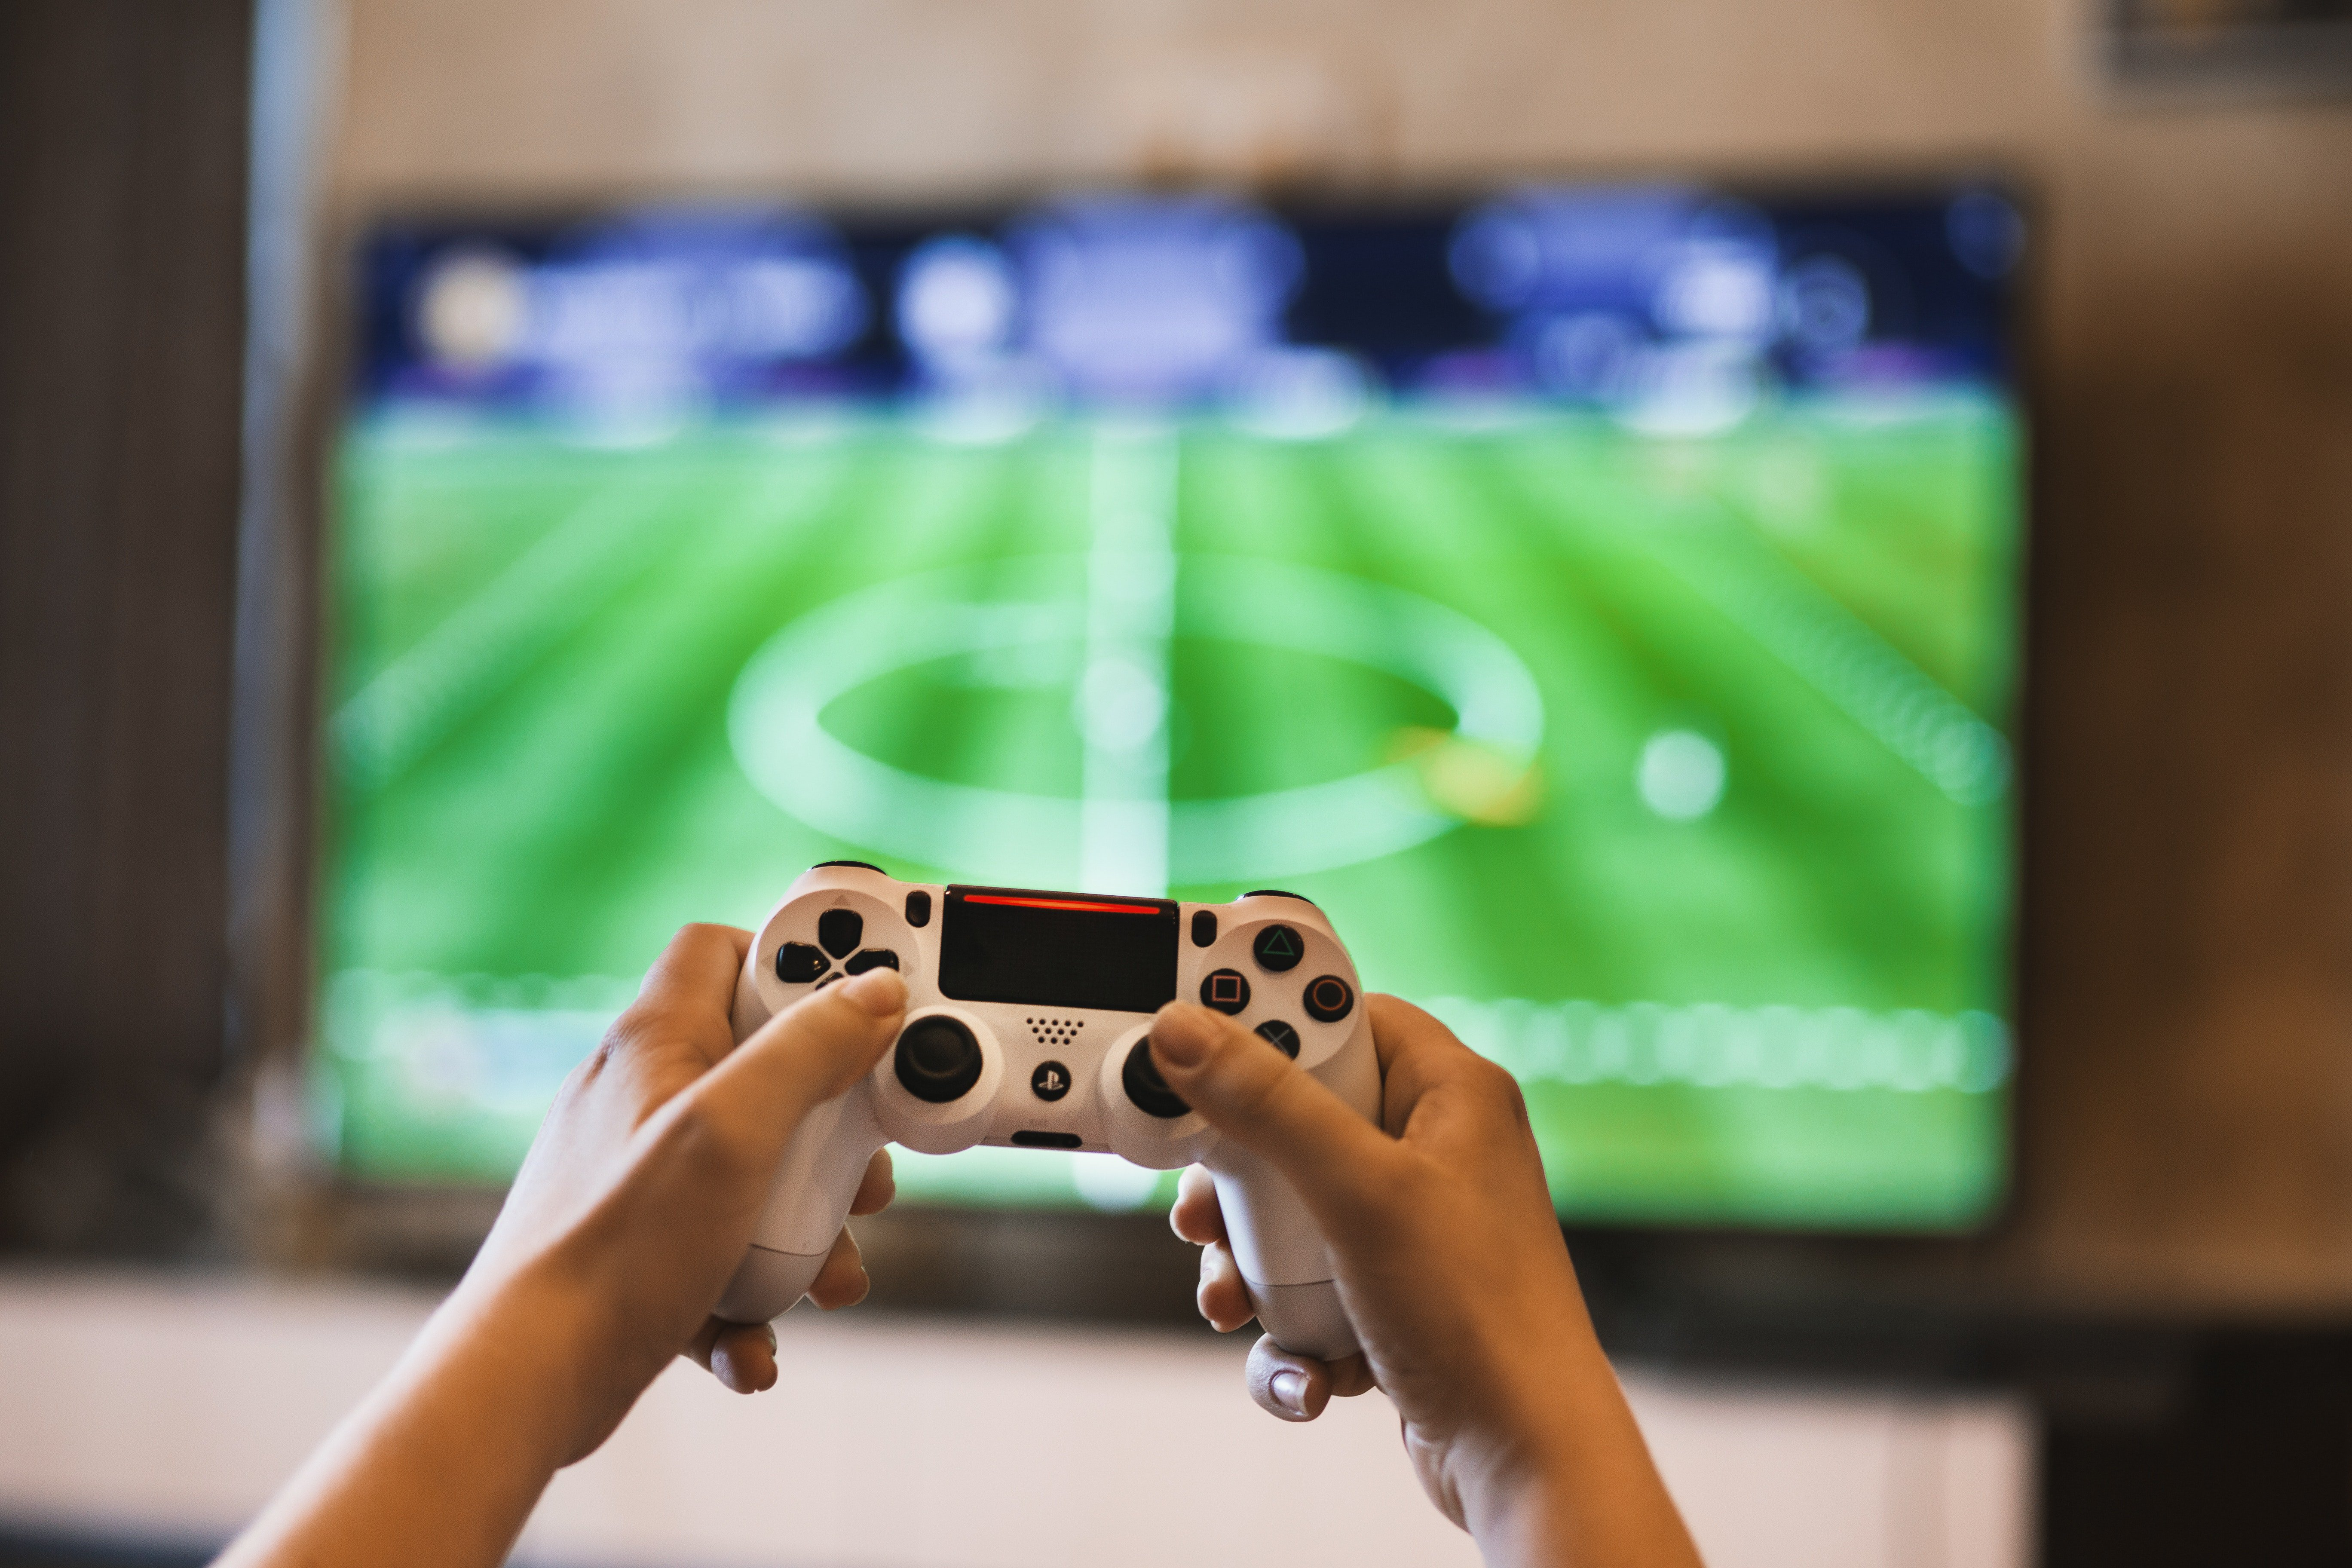 Consumer Trends: Get on the Same Level as Gamers